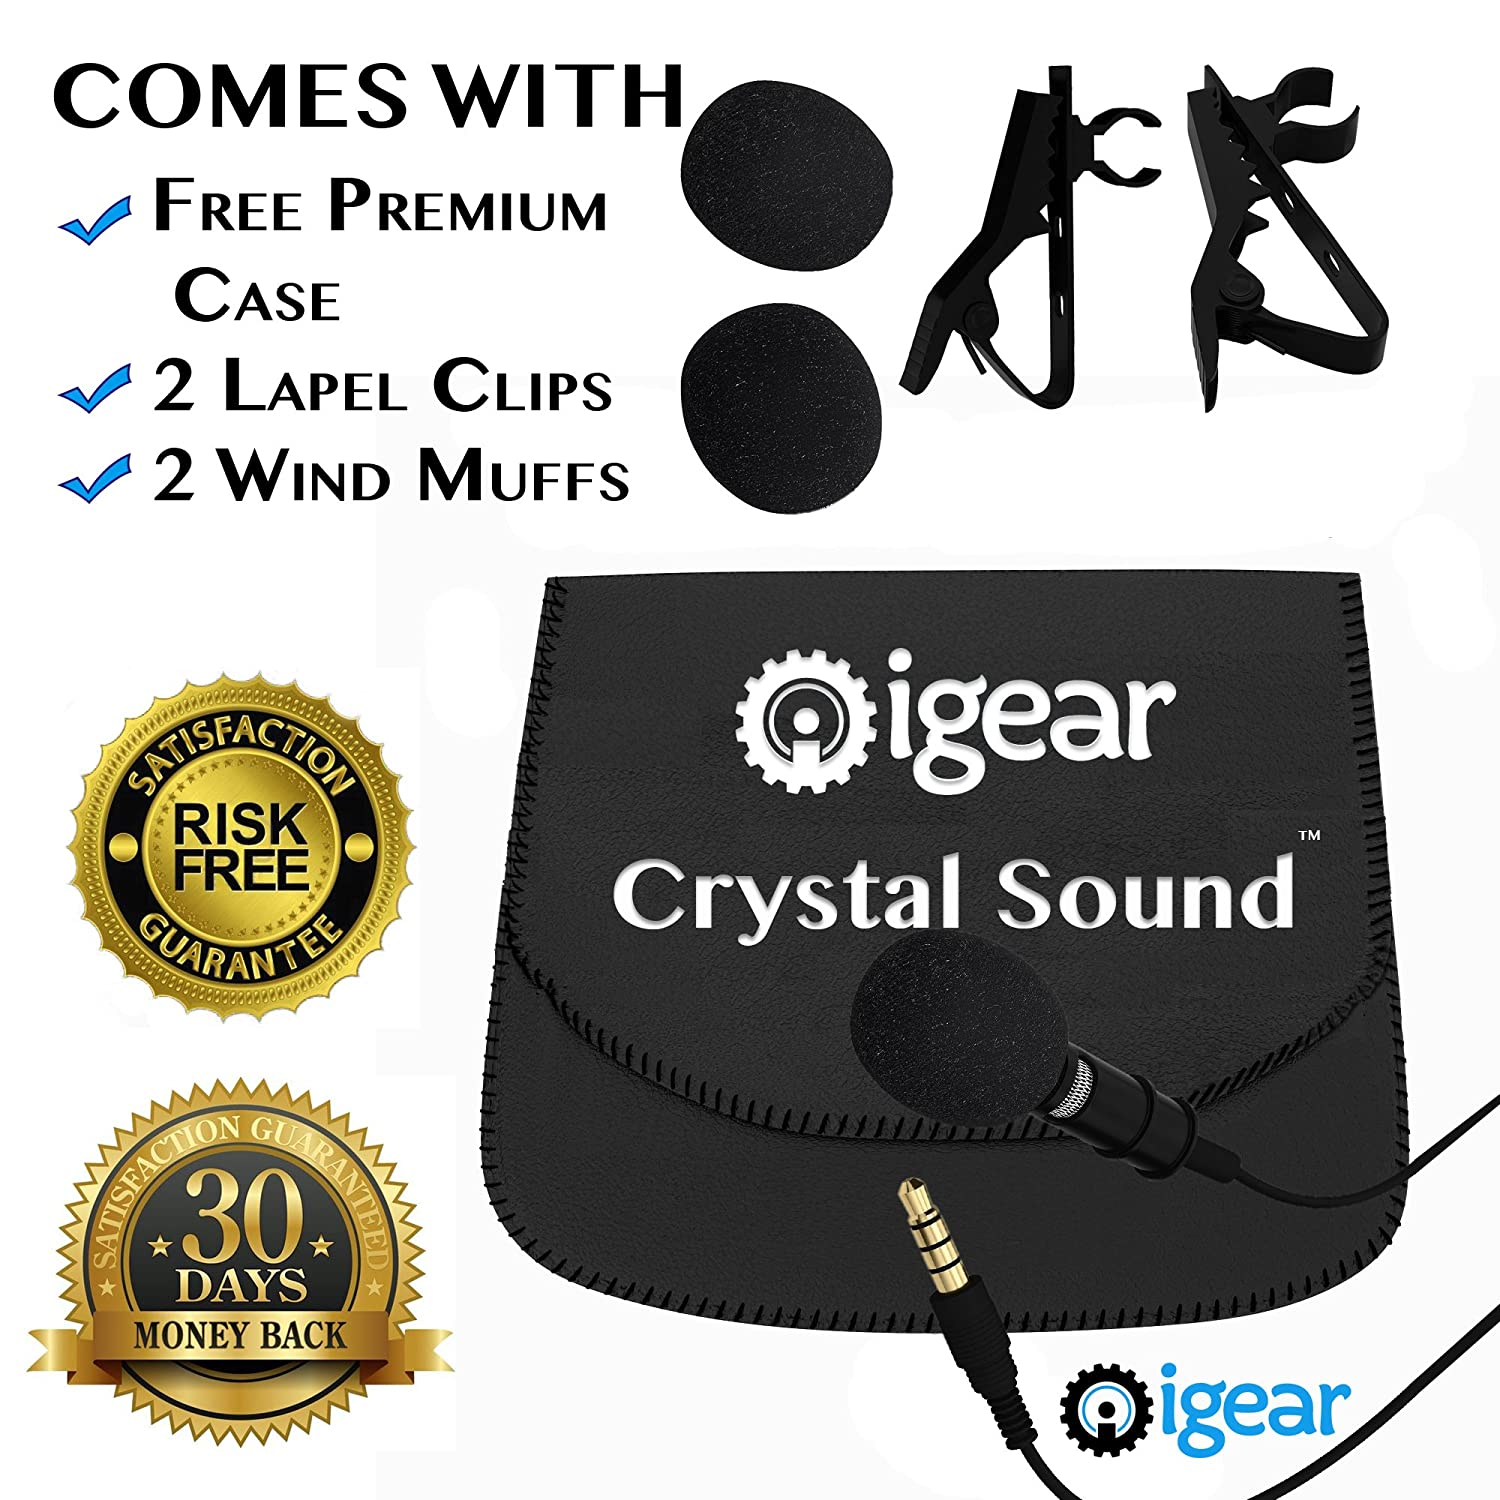 iGear Best Premium Clip-on Lavalier Lapel Omnidirectional Condenser Microphone for Youtube, Interview, Apple Iphone Android & Windows Smartphones. Tiny Microphone comes with FREE Case & Extra Goodies